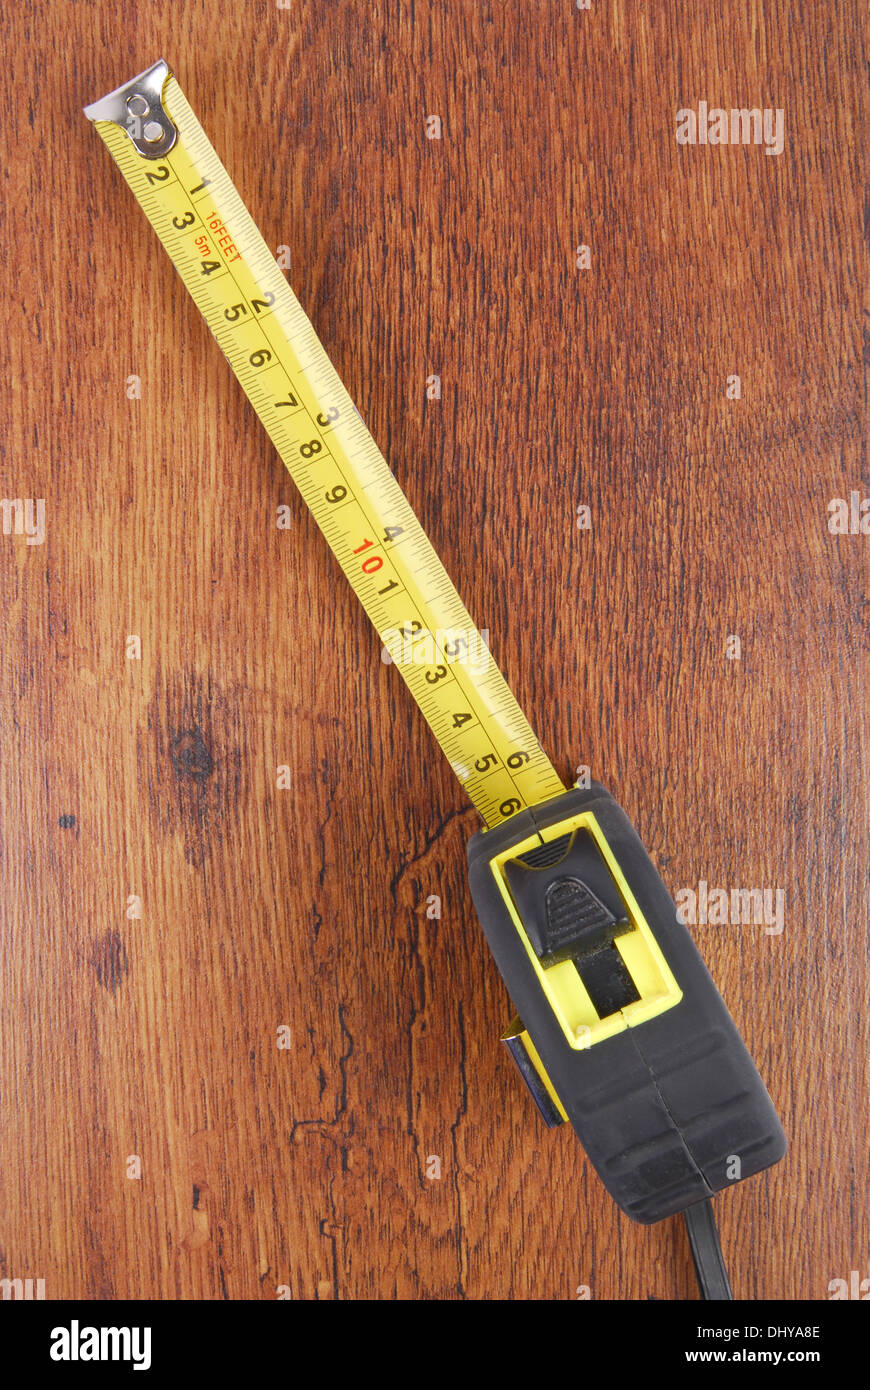 laminate and tape measure - Stock Image